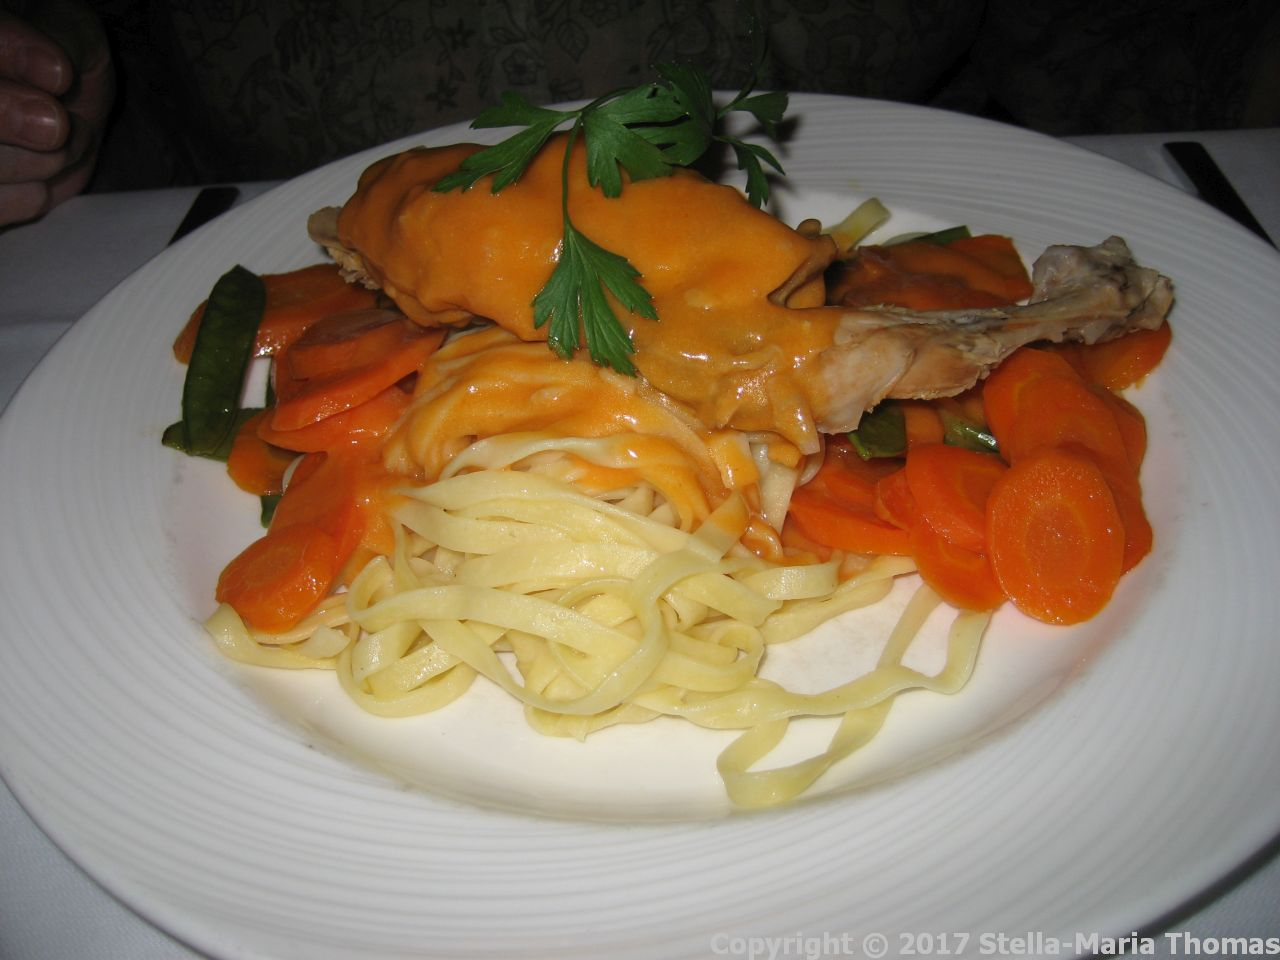 BRASSERIE - RABBIT WITH NOODLES, SAUCE, SUGAR SNAP PEAS AND CARROTS 009